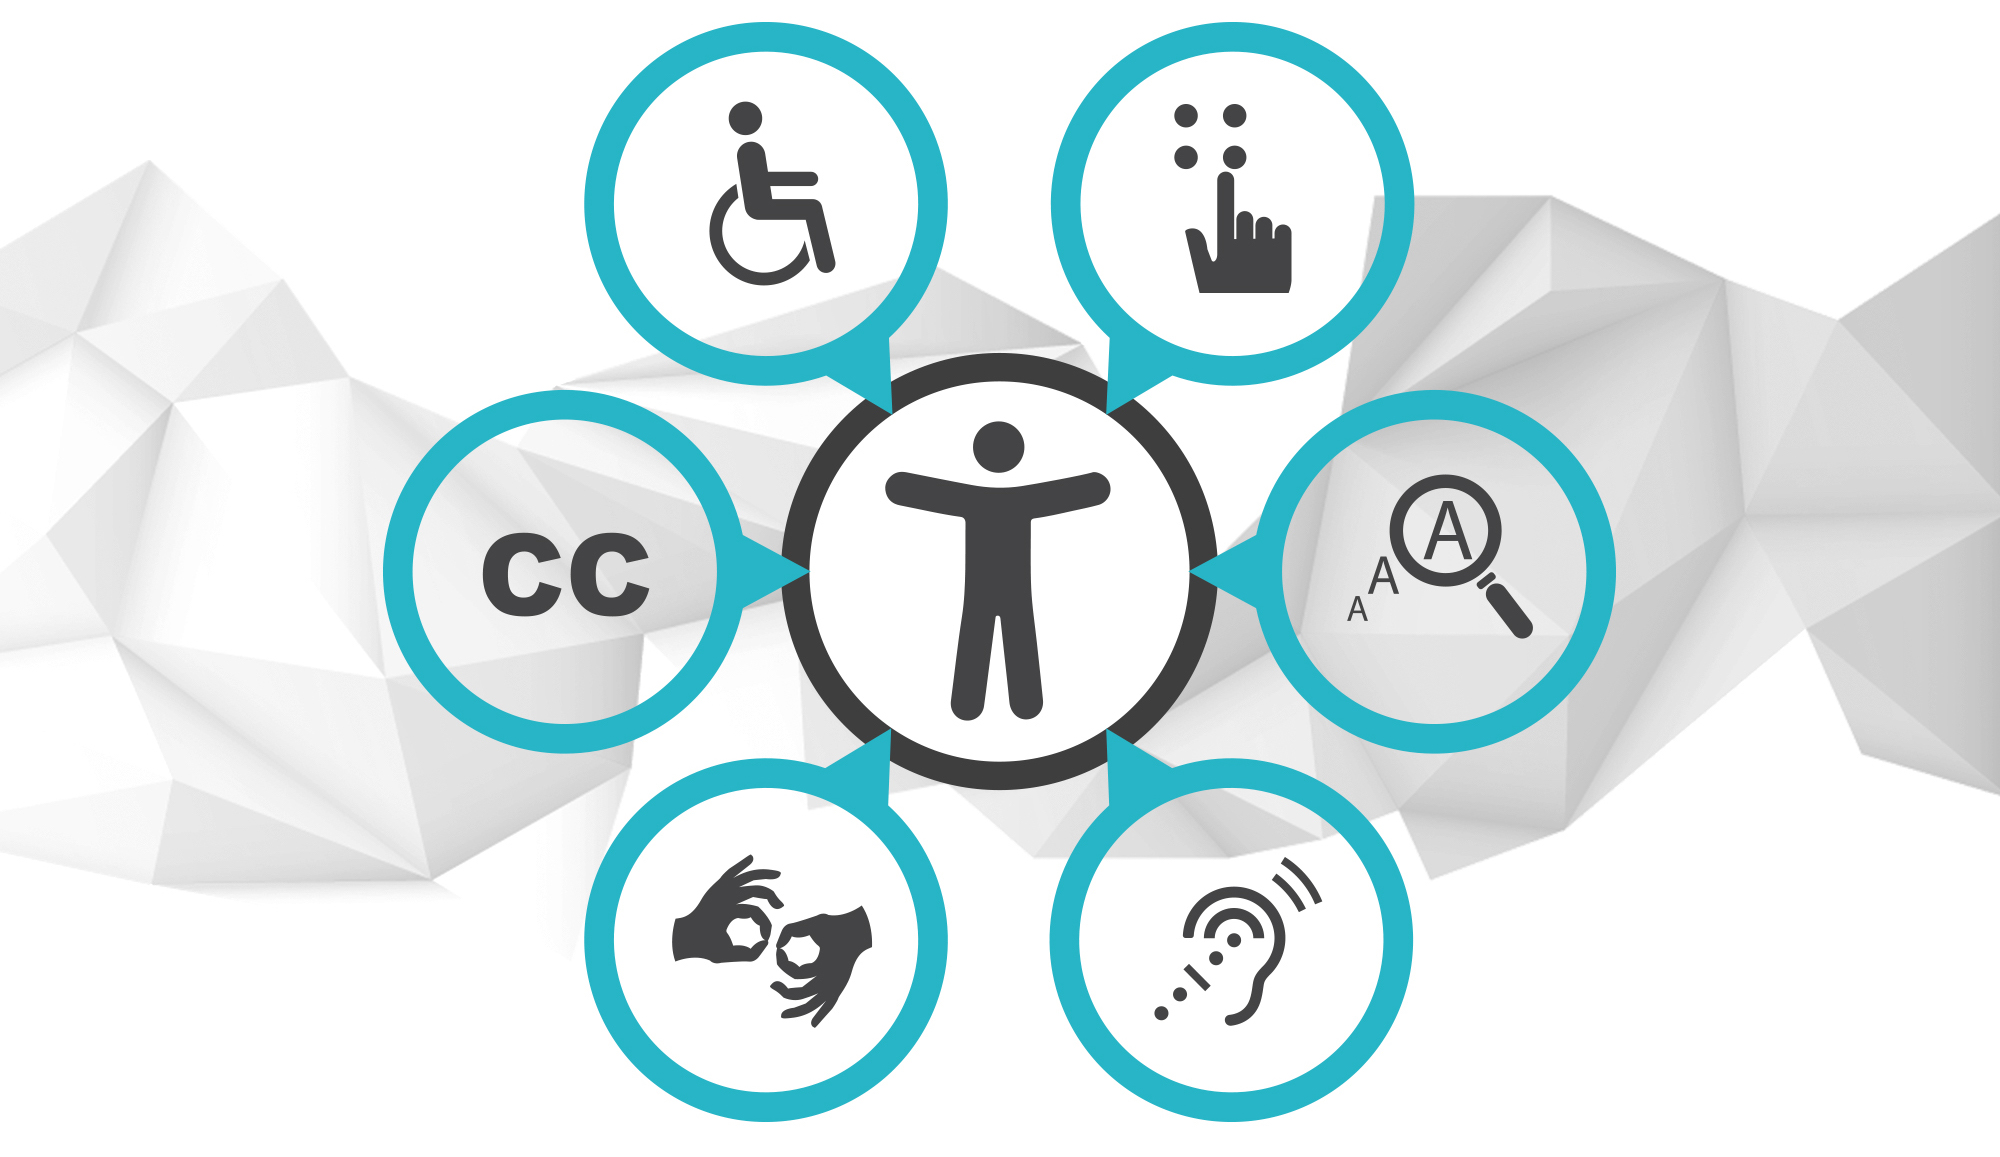 What are the key pointers to anyone embarking on improving their accessibility?